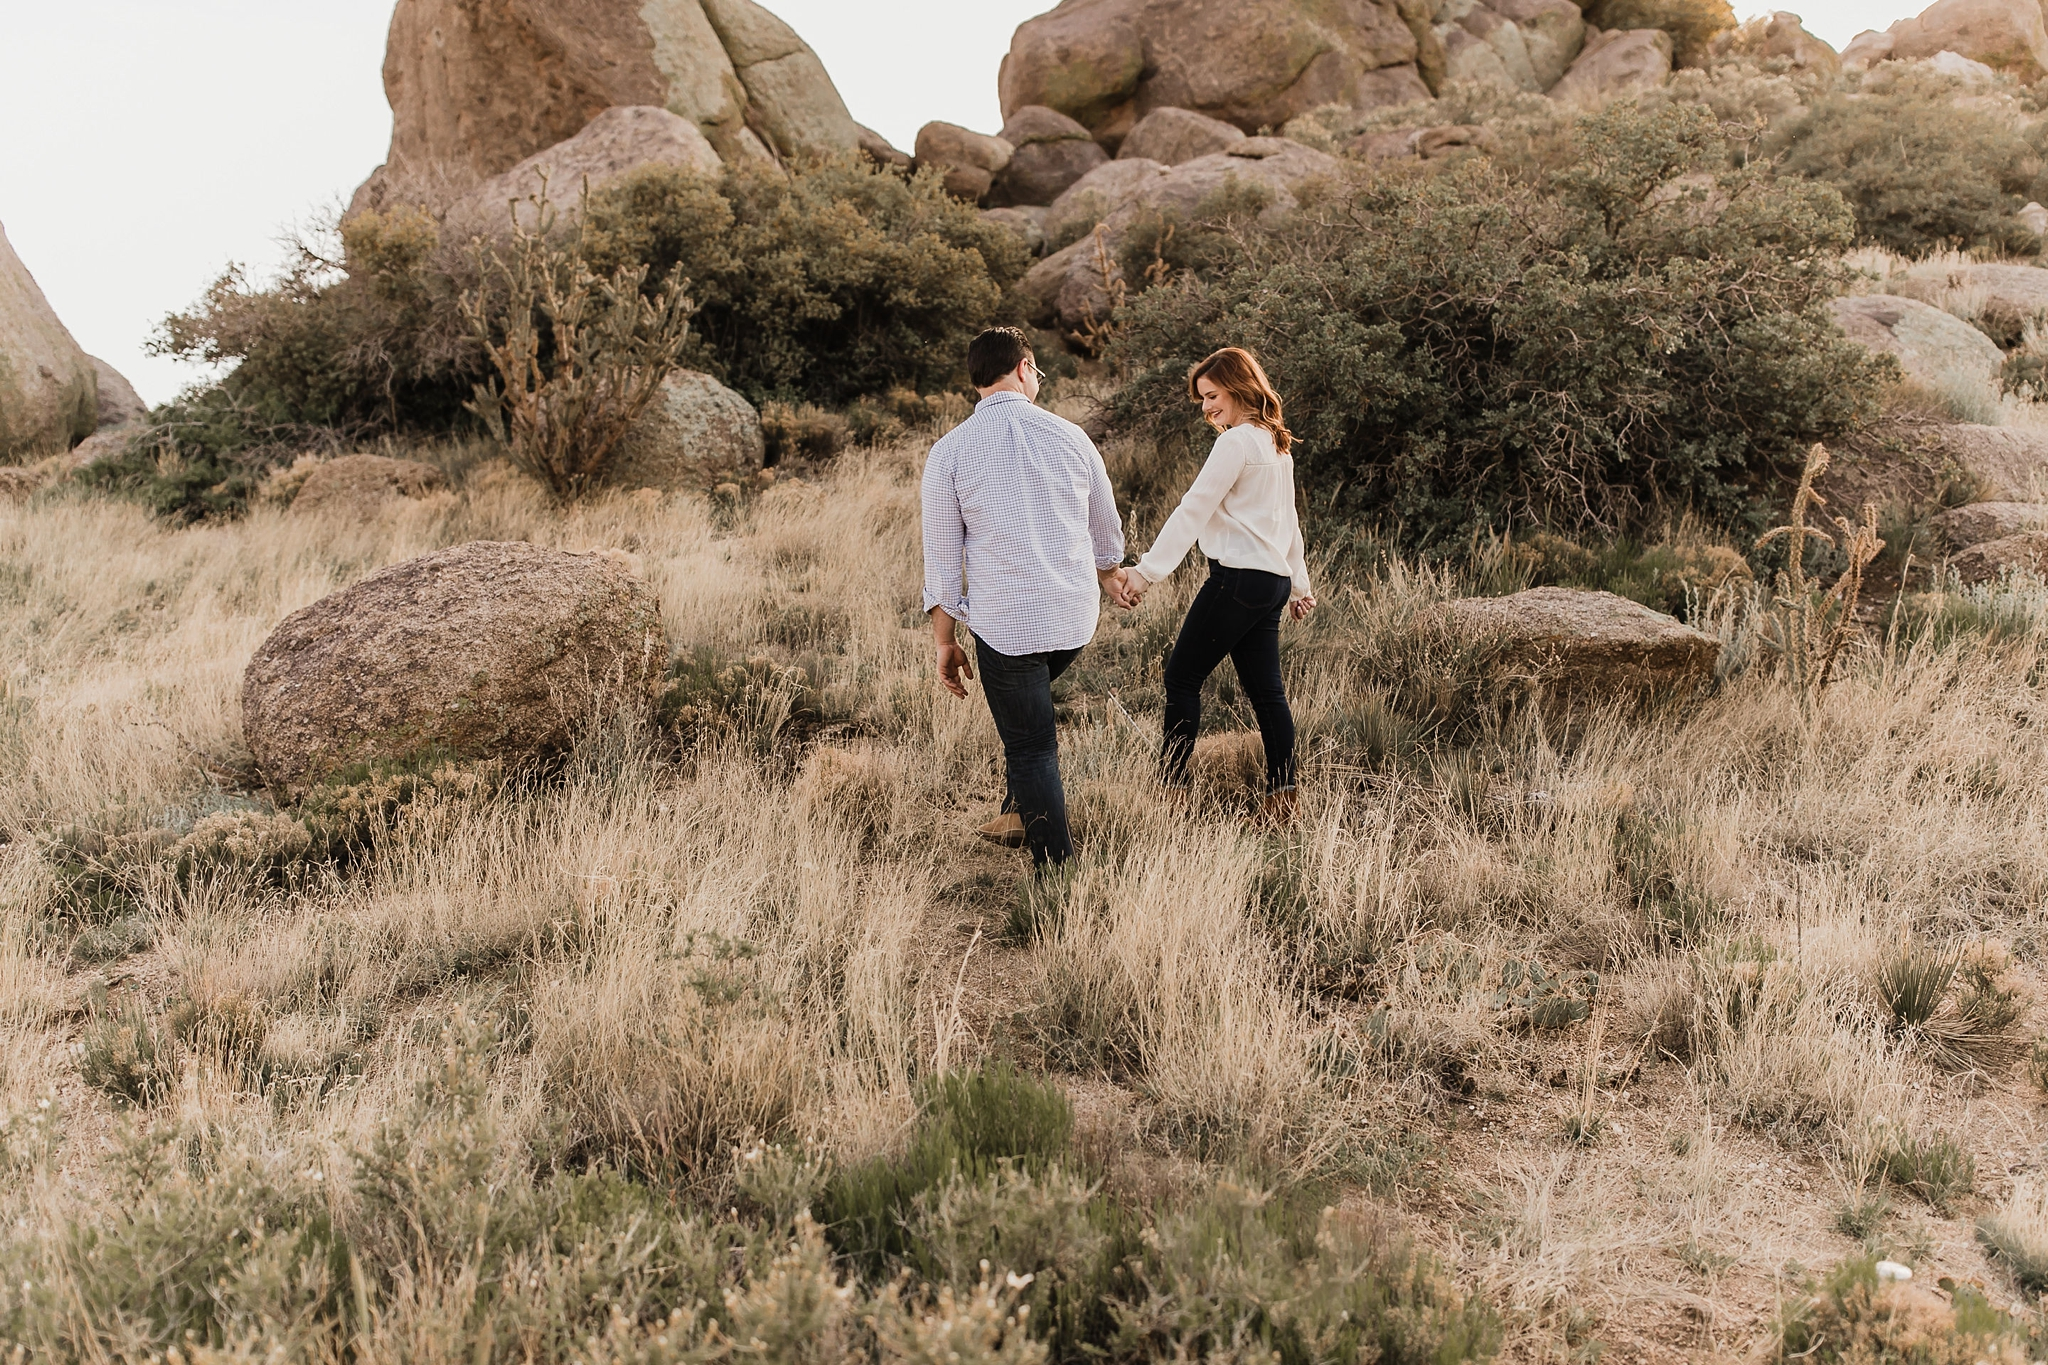 Alicia+lucia+photography+-+albuquerque+wedding+photographer+-+santa+fe+wedding+photography+-+new+mexico+wedding+photographer+-+new+mexico+wedding+-+new+mexico+engagement+-+engagement+photographer+-+mountain+engagement+-+desert+engagement_0014.jpg